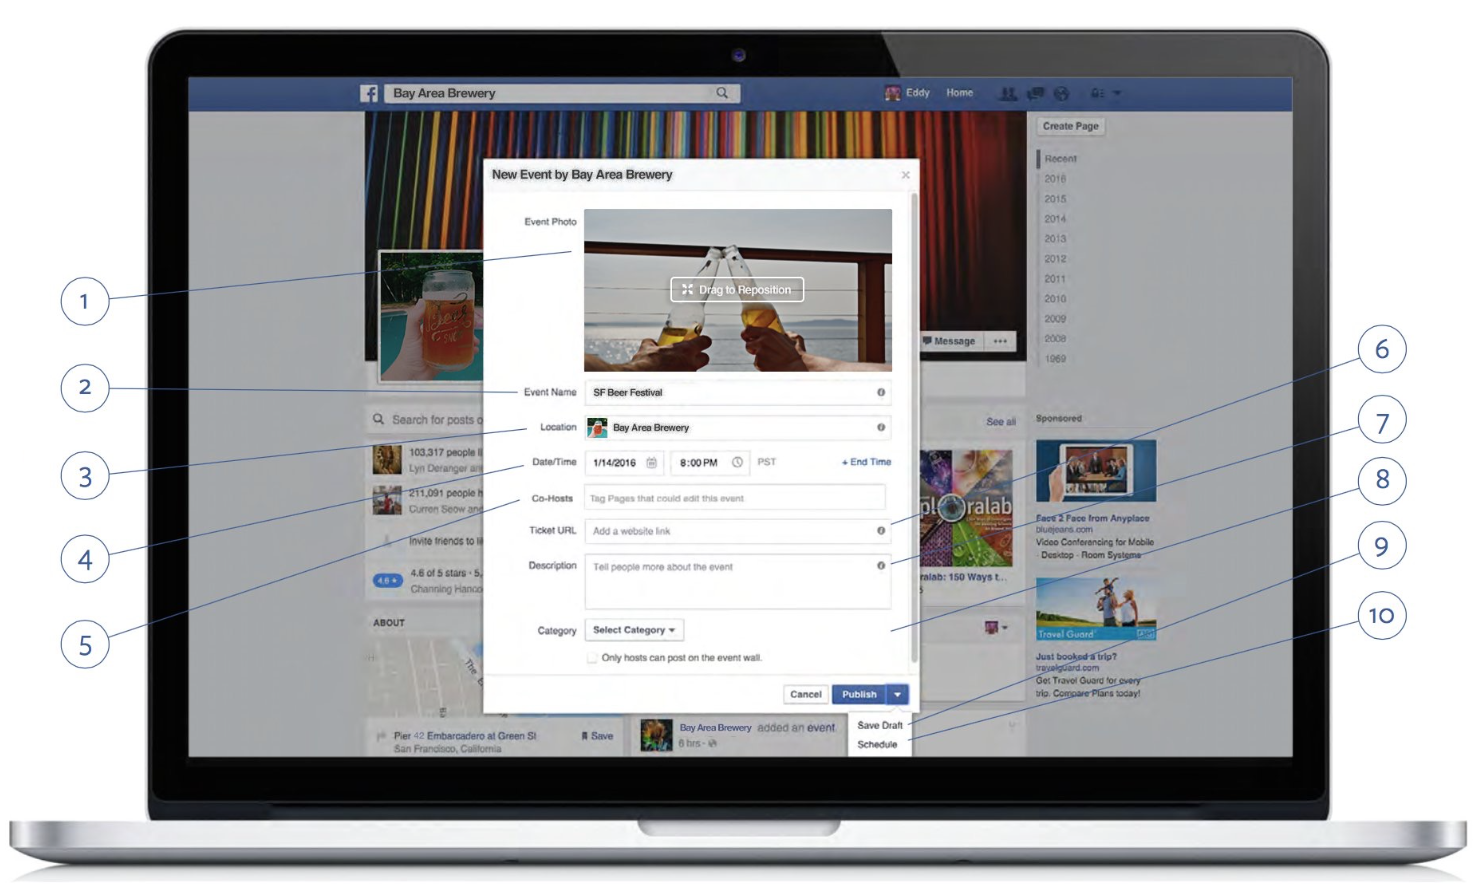 how to delete an event on facebook